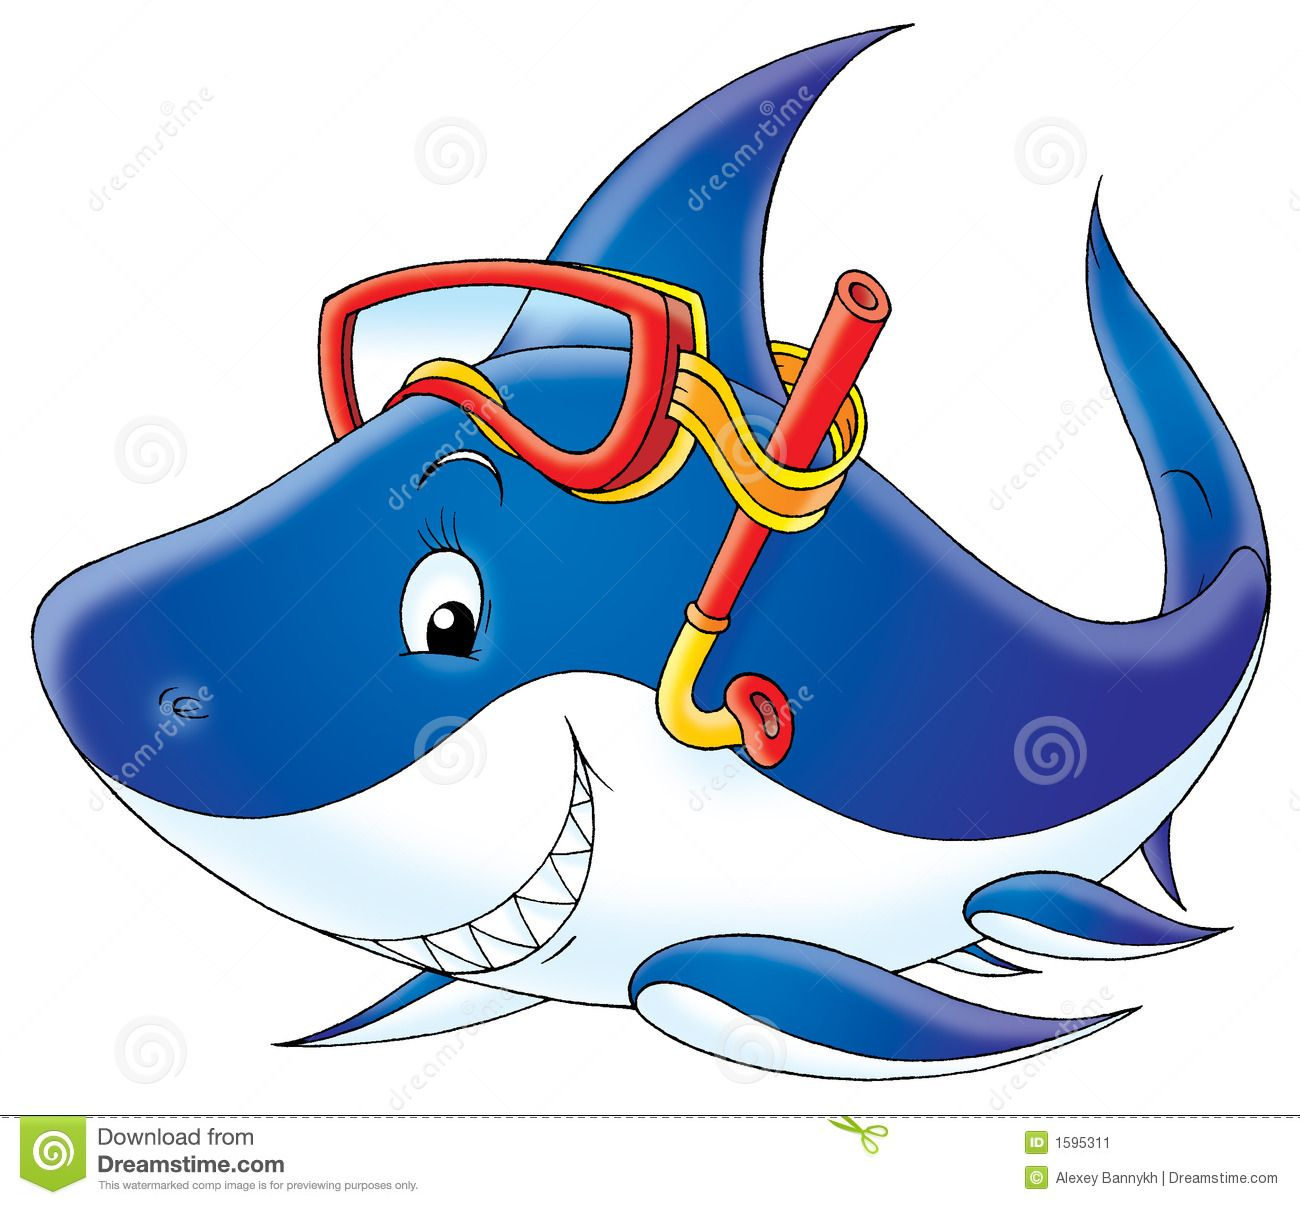 Whale Shark Clipart | Clipart Panda - Free Clipart Images | Dive ... for Smiling Shark Clipart  103wja